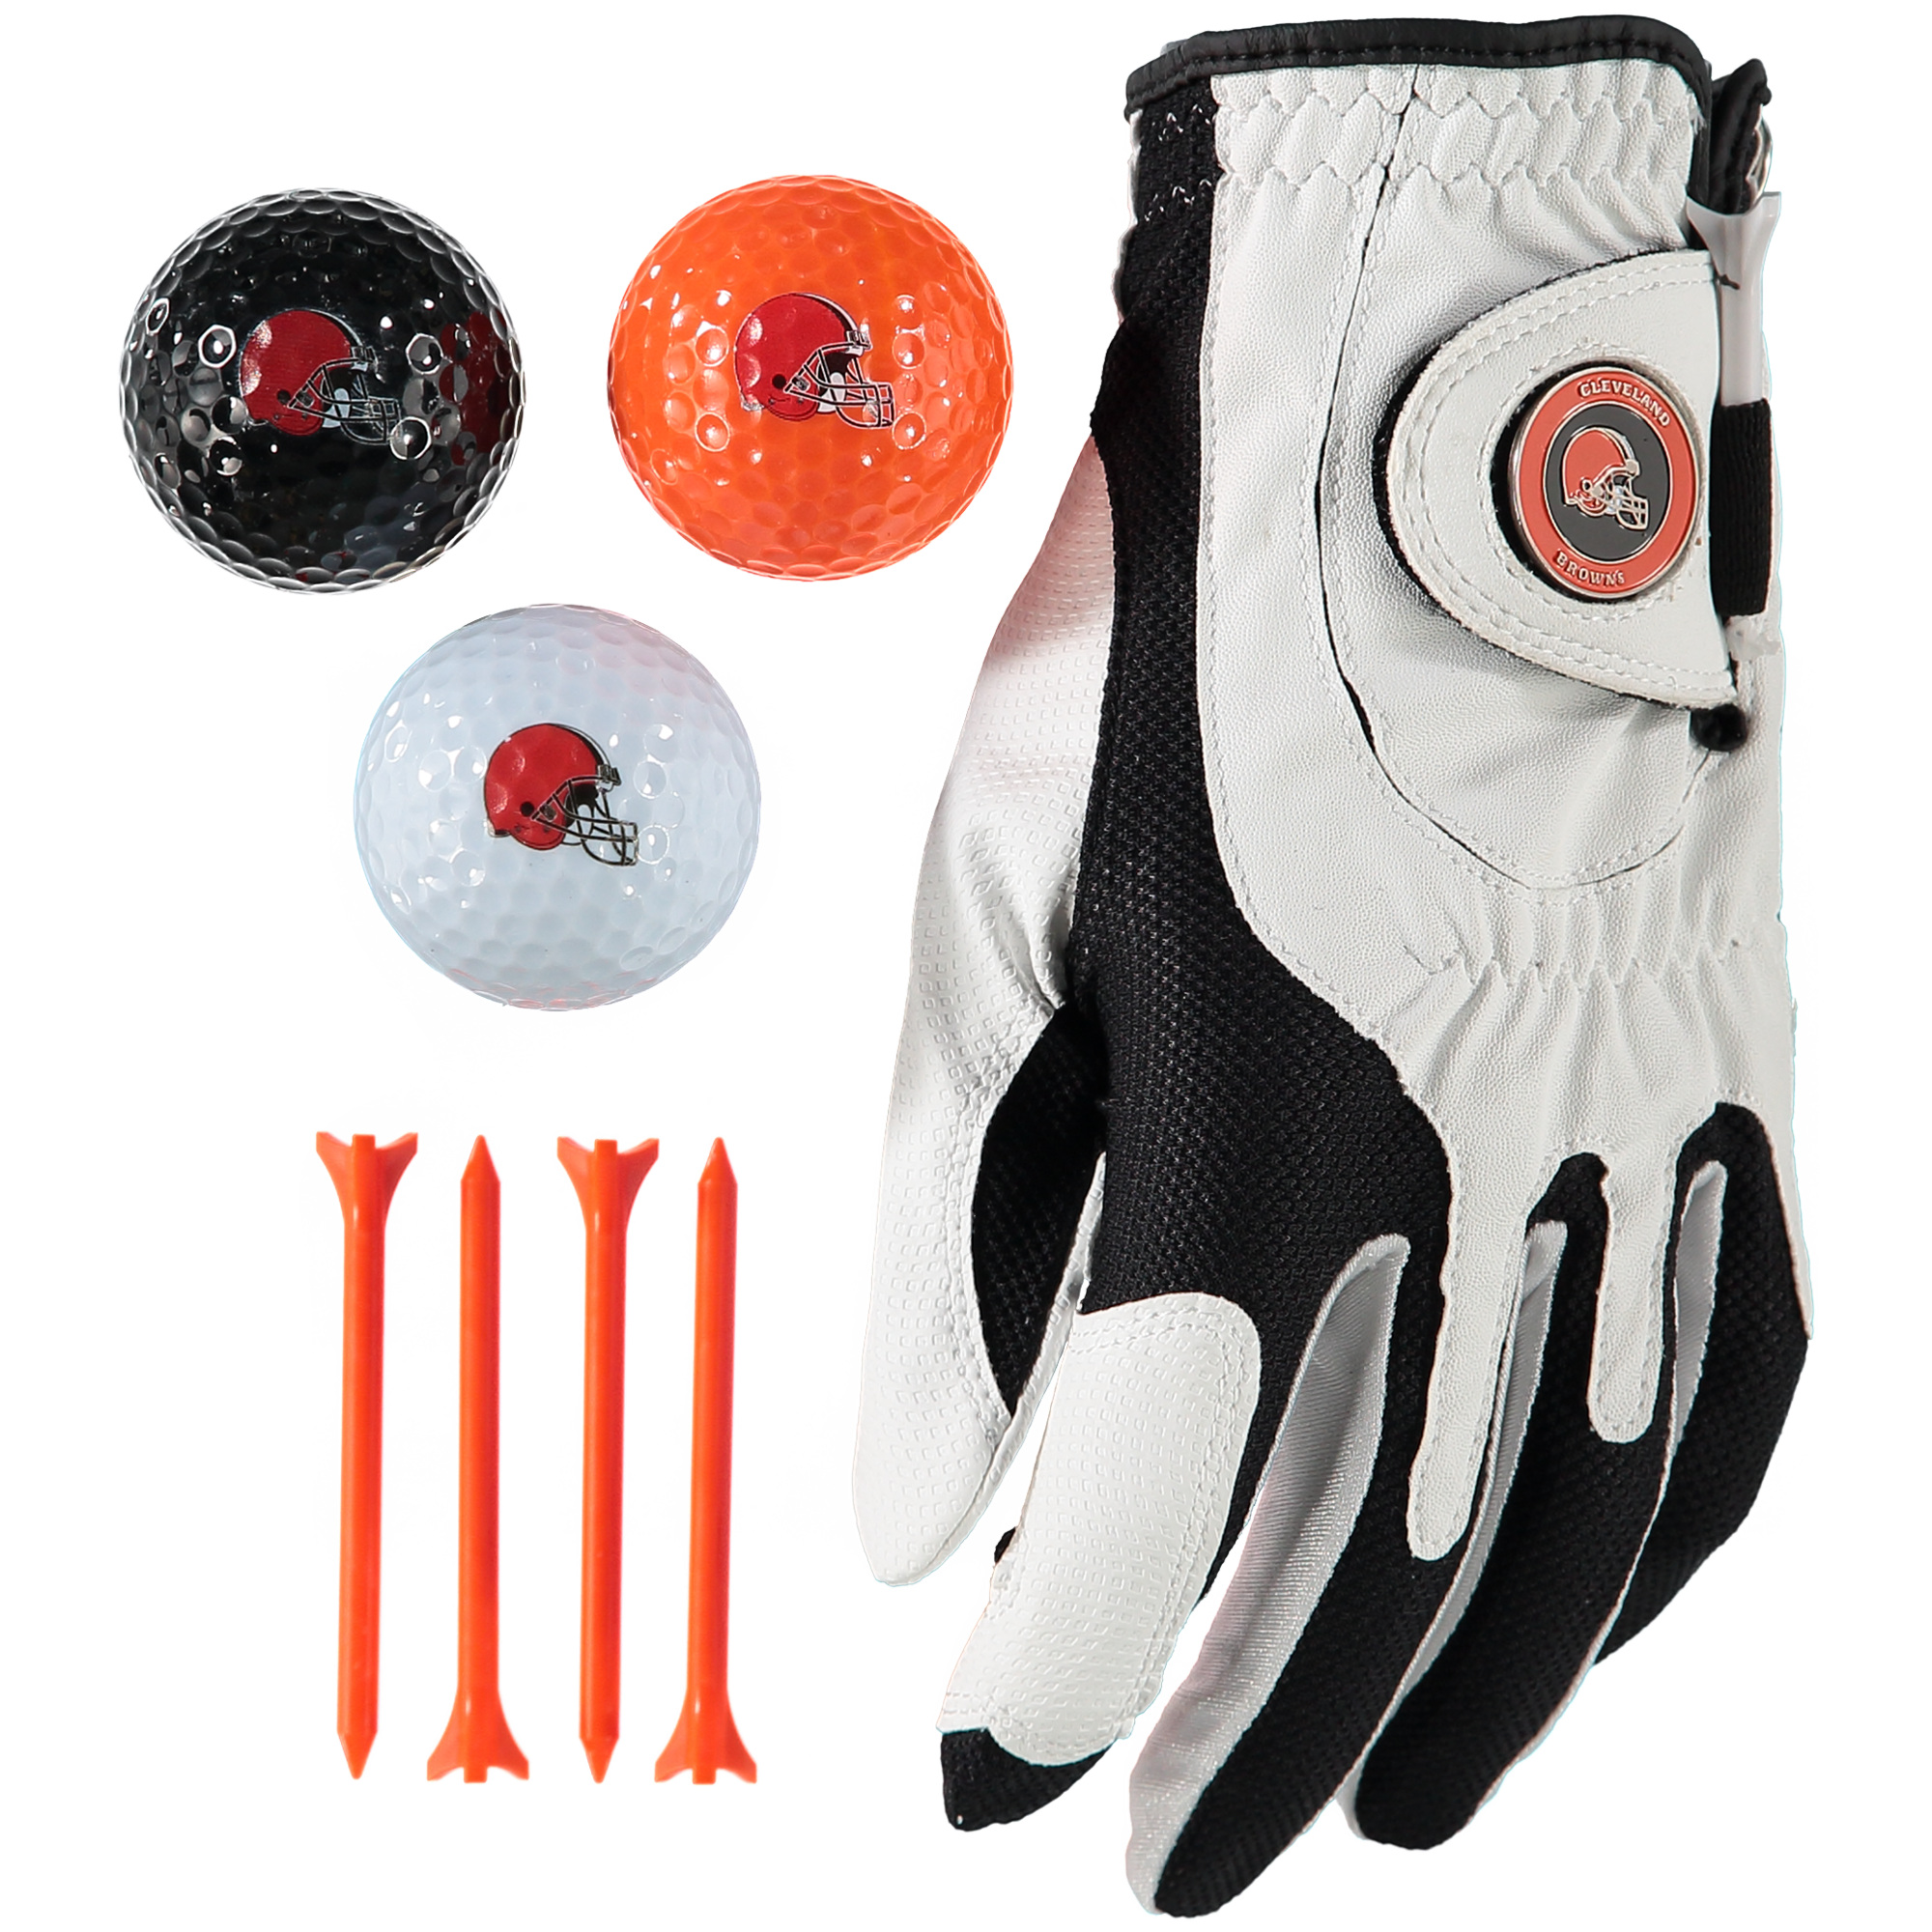 Cleveland Browns Golf Balls, Tees & Glove Set - No Size